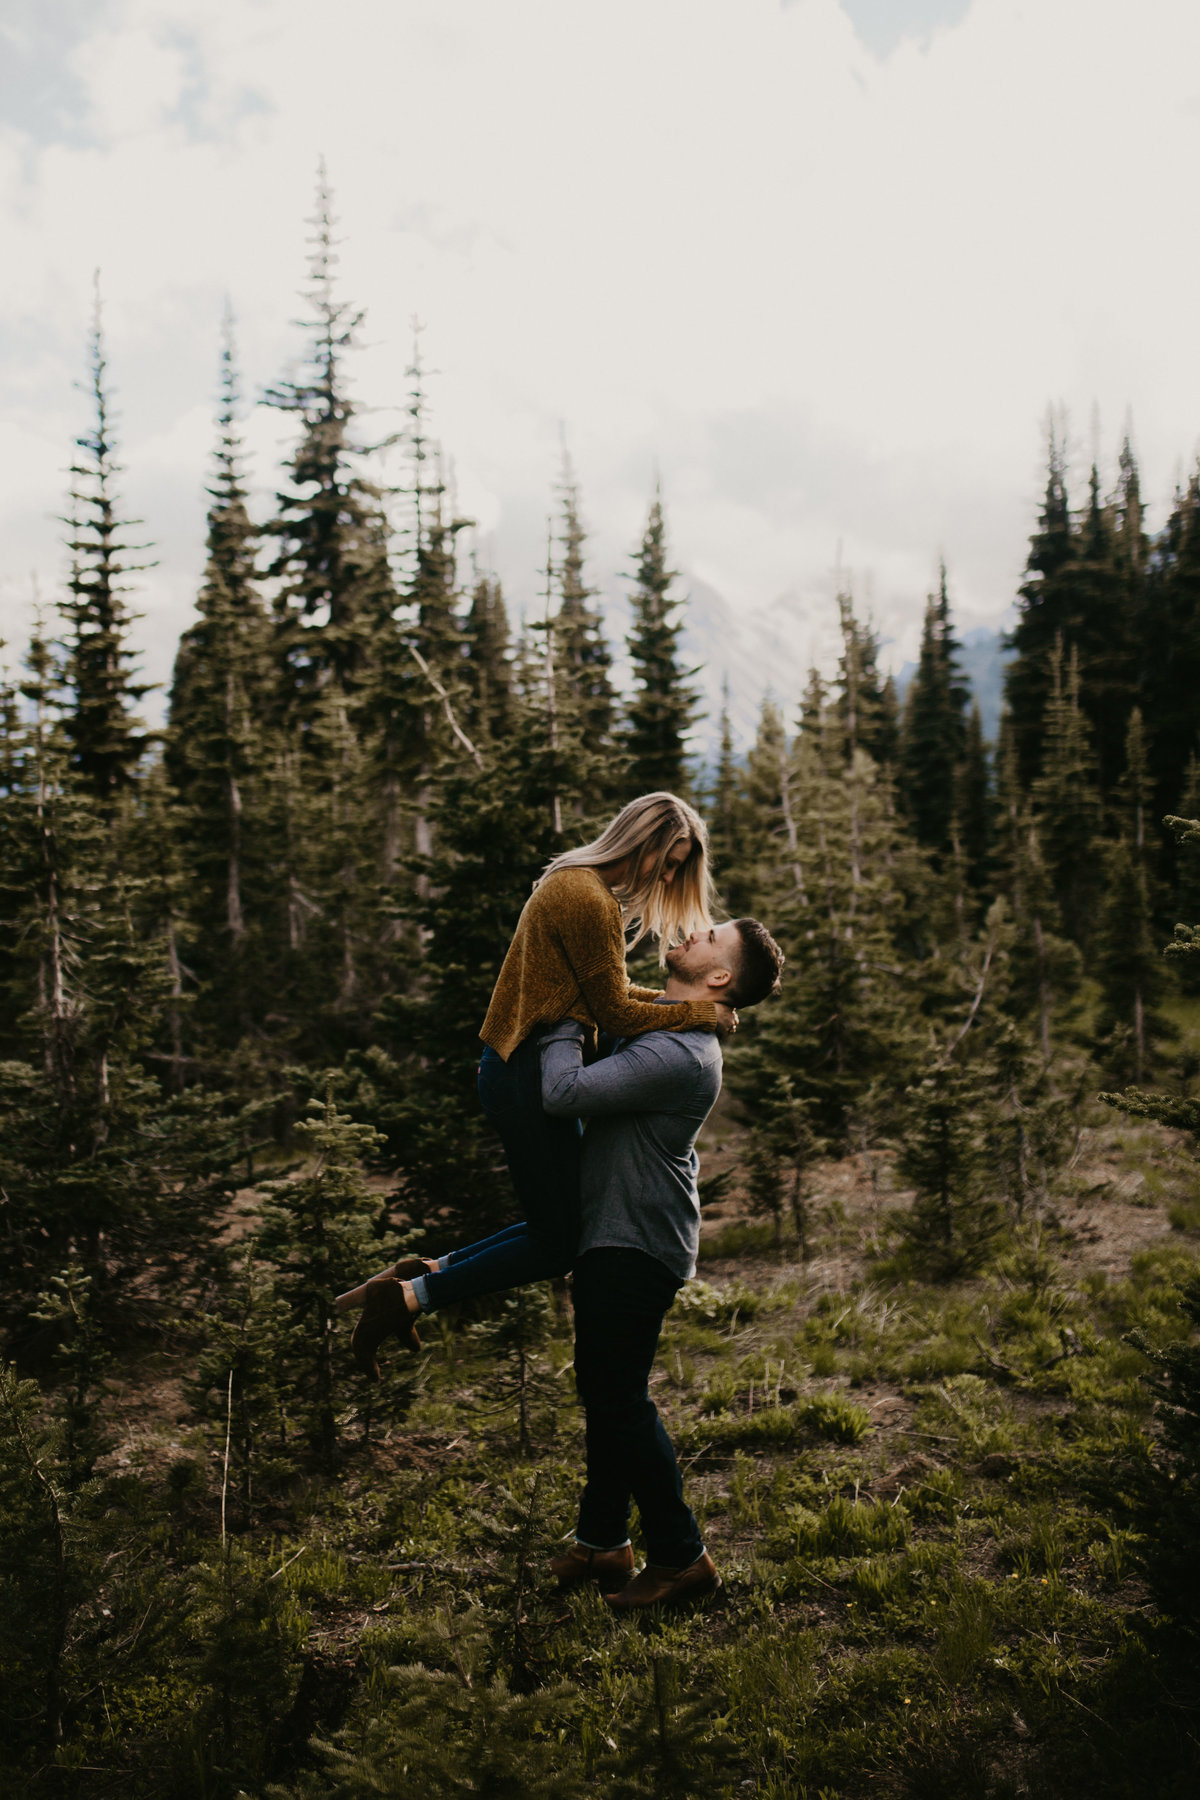 Marnie_Cornell_Photography_Engagement_Mount_Rainier_RK-107